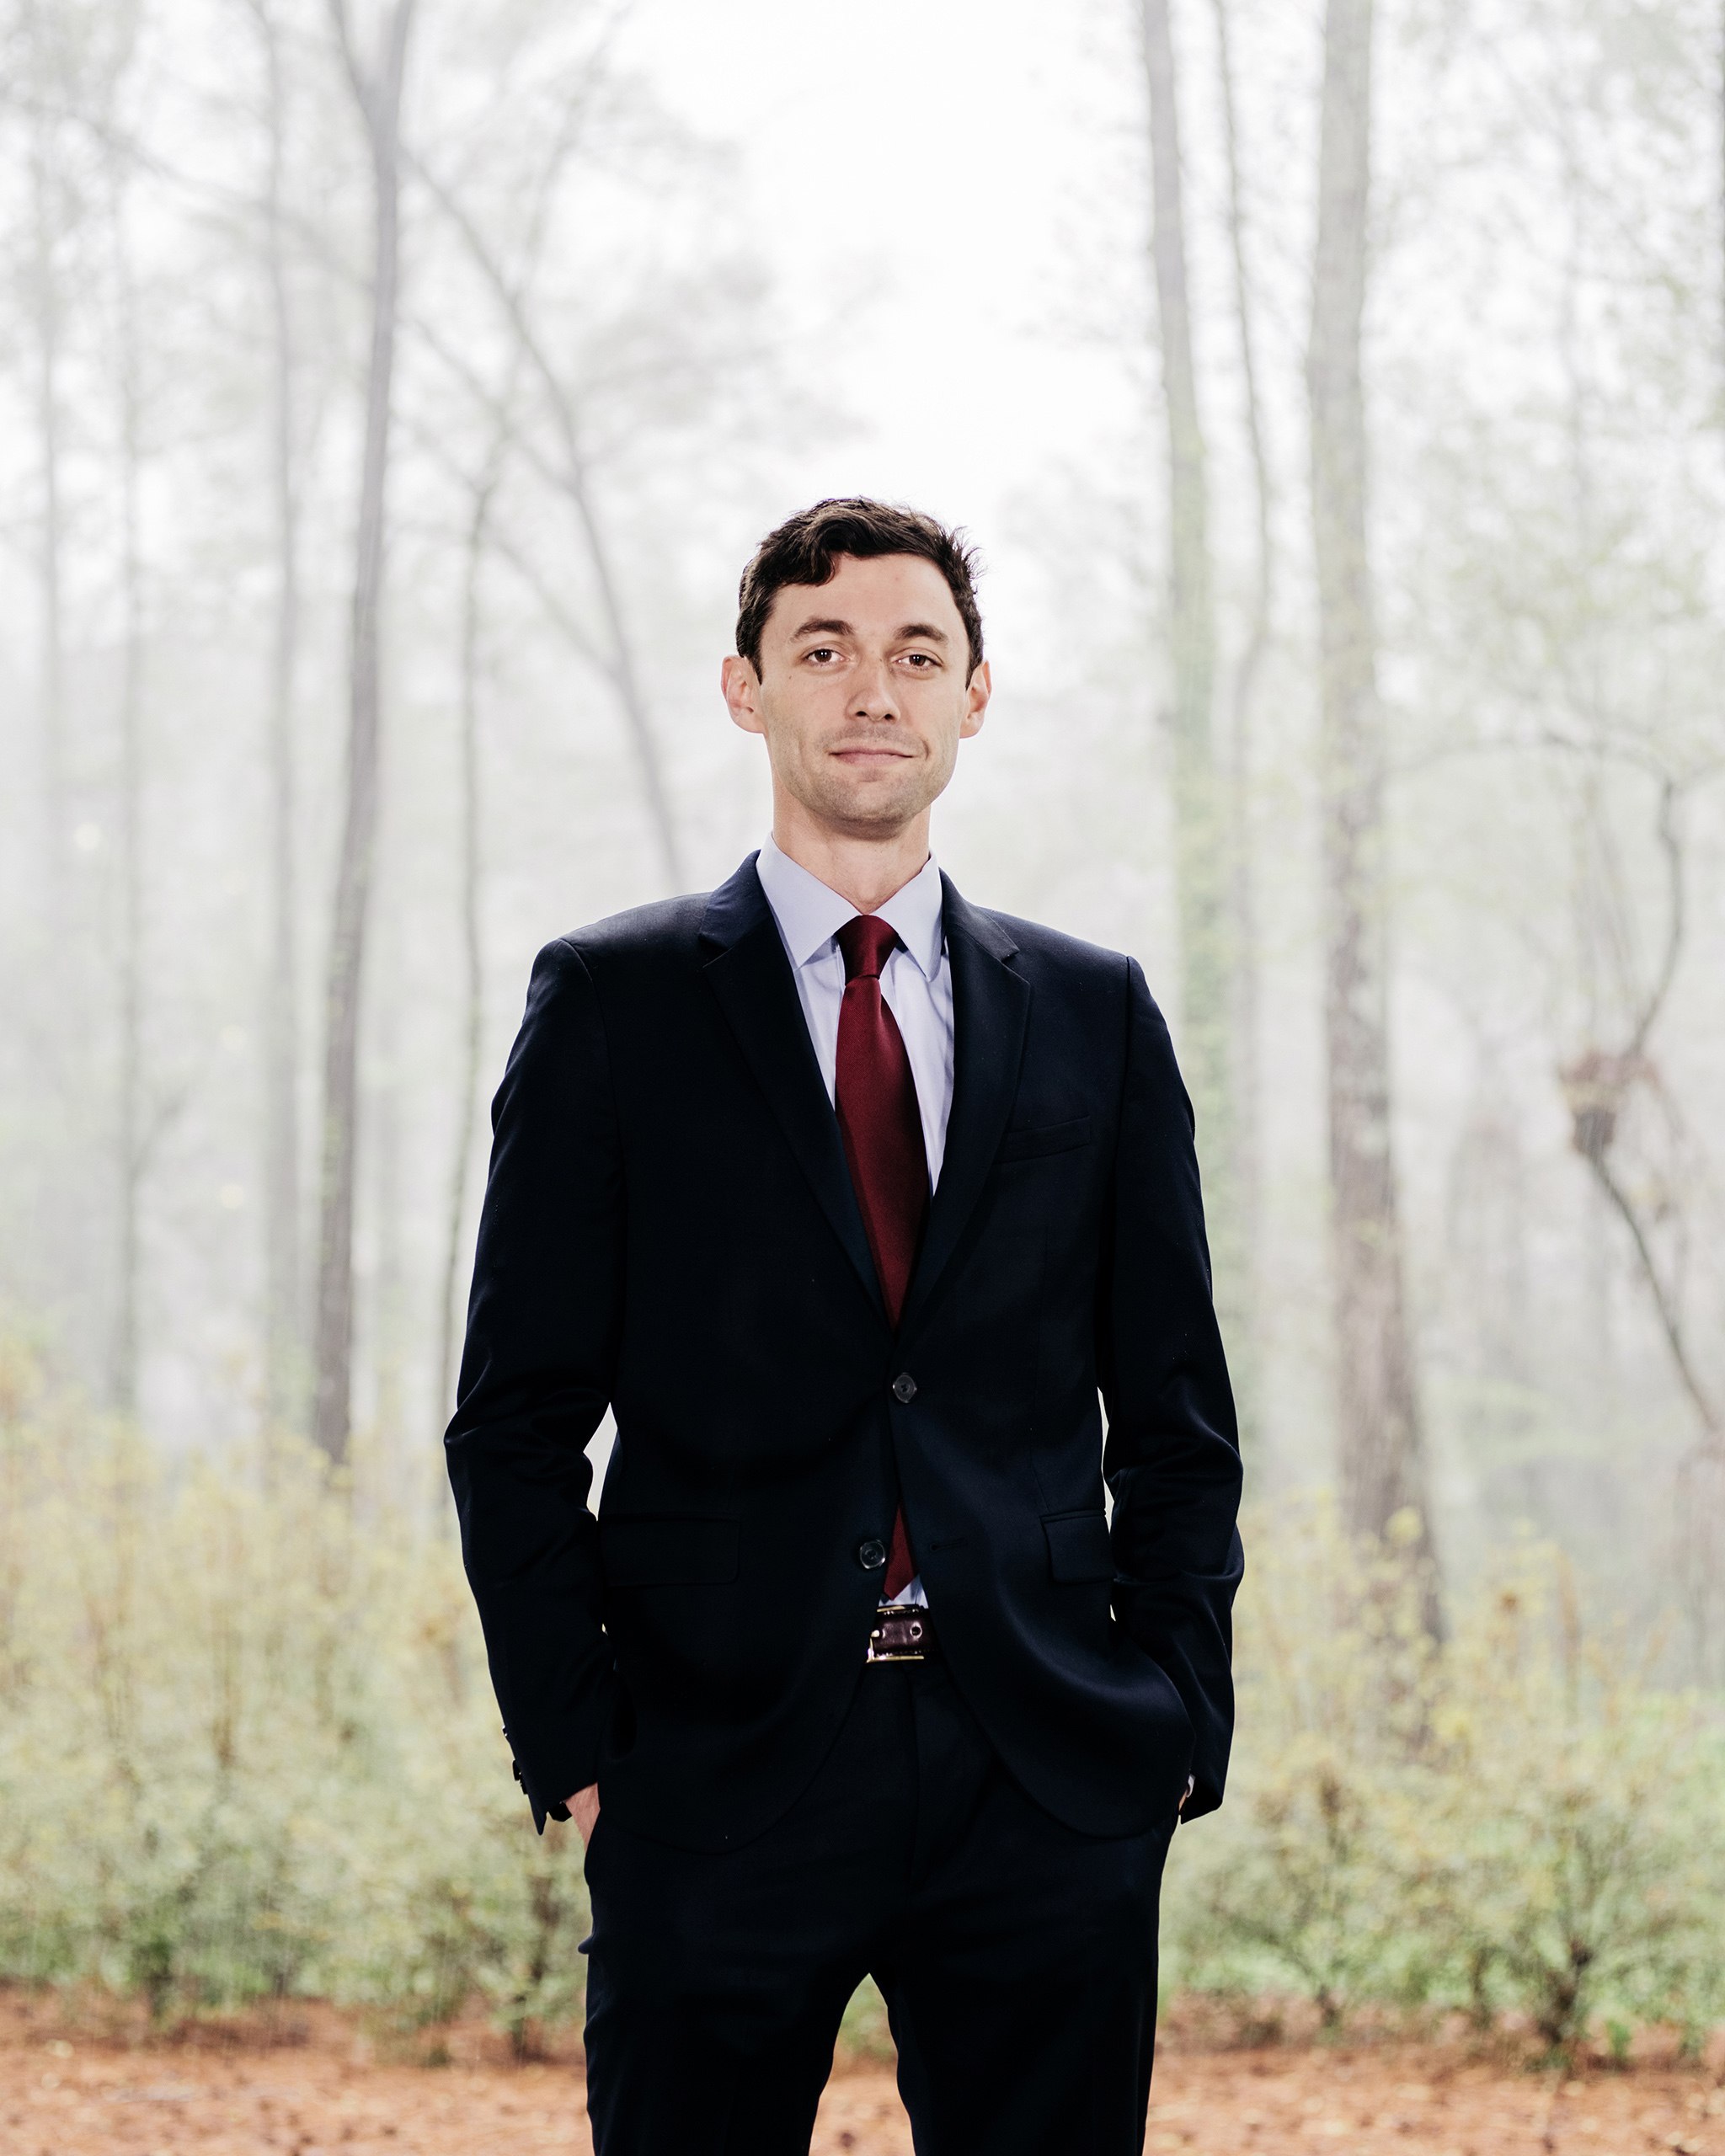 Jon Ossoff, 30. Candidate in Georgia's 6th Congressional District •Atlanta native with degrees from Georgetown University and the London School of Economics •A former congressional aide, he became CEO of a company that makes documentaries about global issues •Announced his campaign in January with the endorsement of Democratic Representative John Lewis.